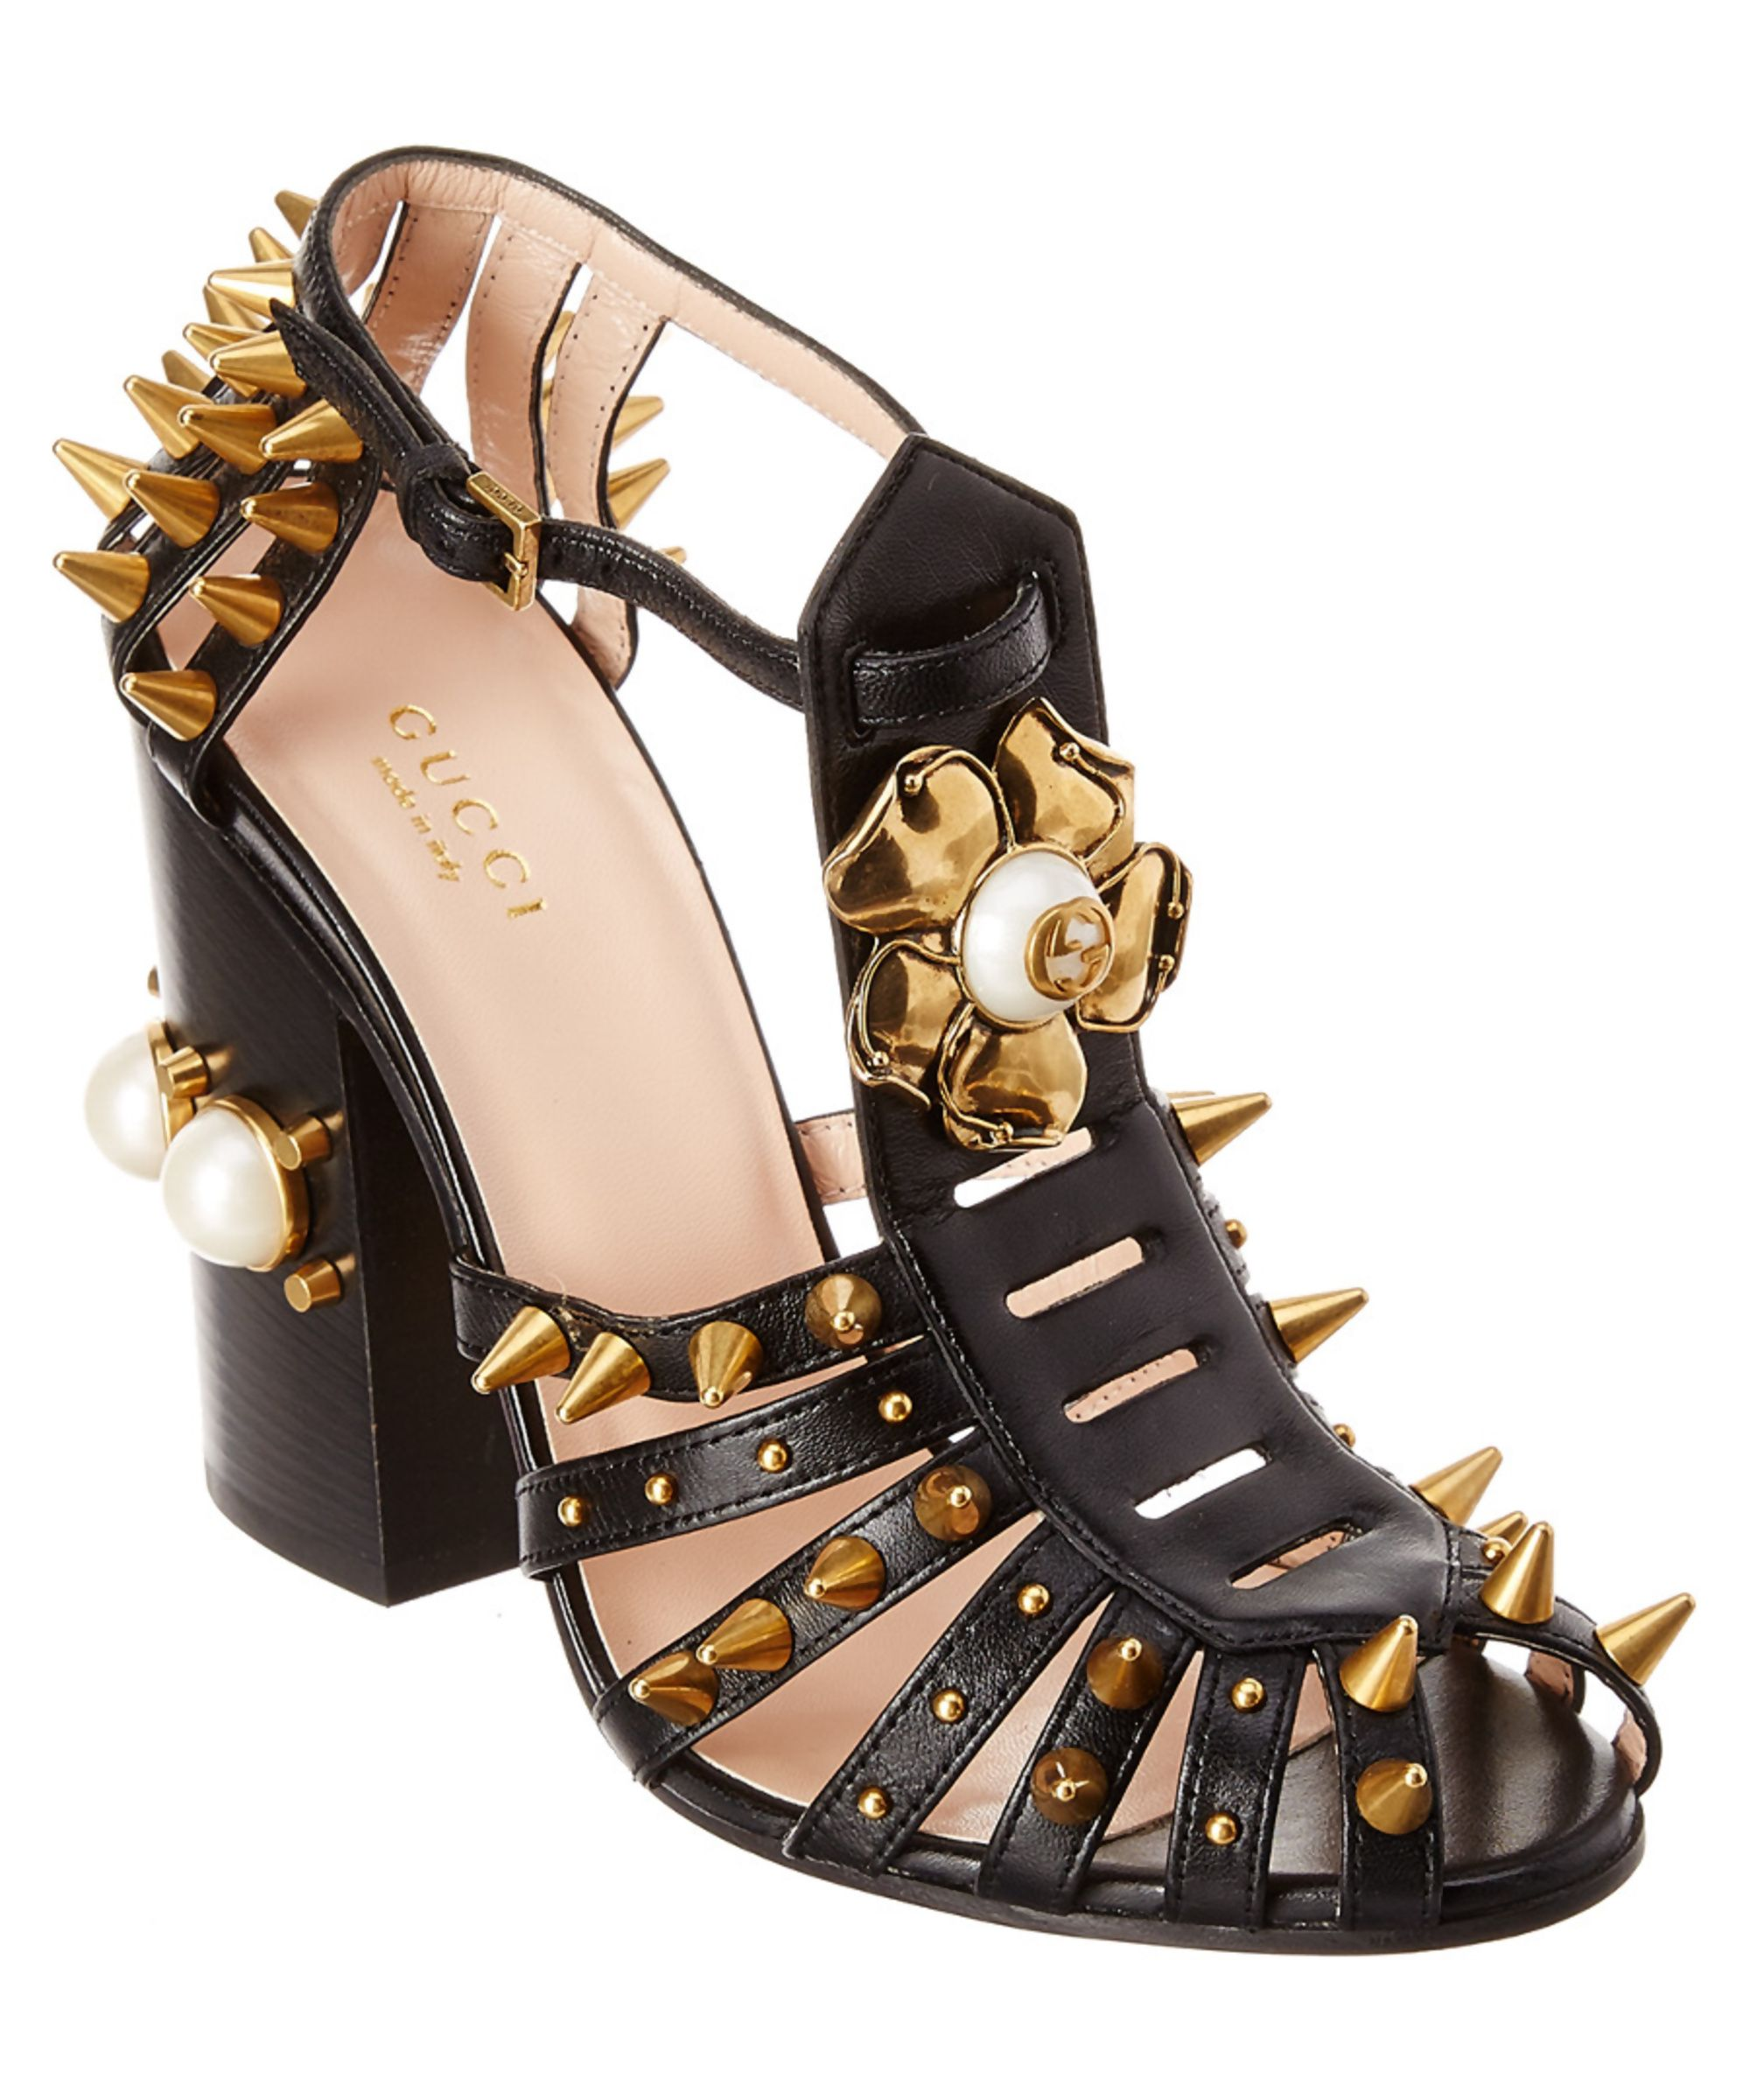 c13958c6b GUCCI | Gucci Kendall Studded Leather Sandal #Shoes #Sandals #GUCCI ...